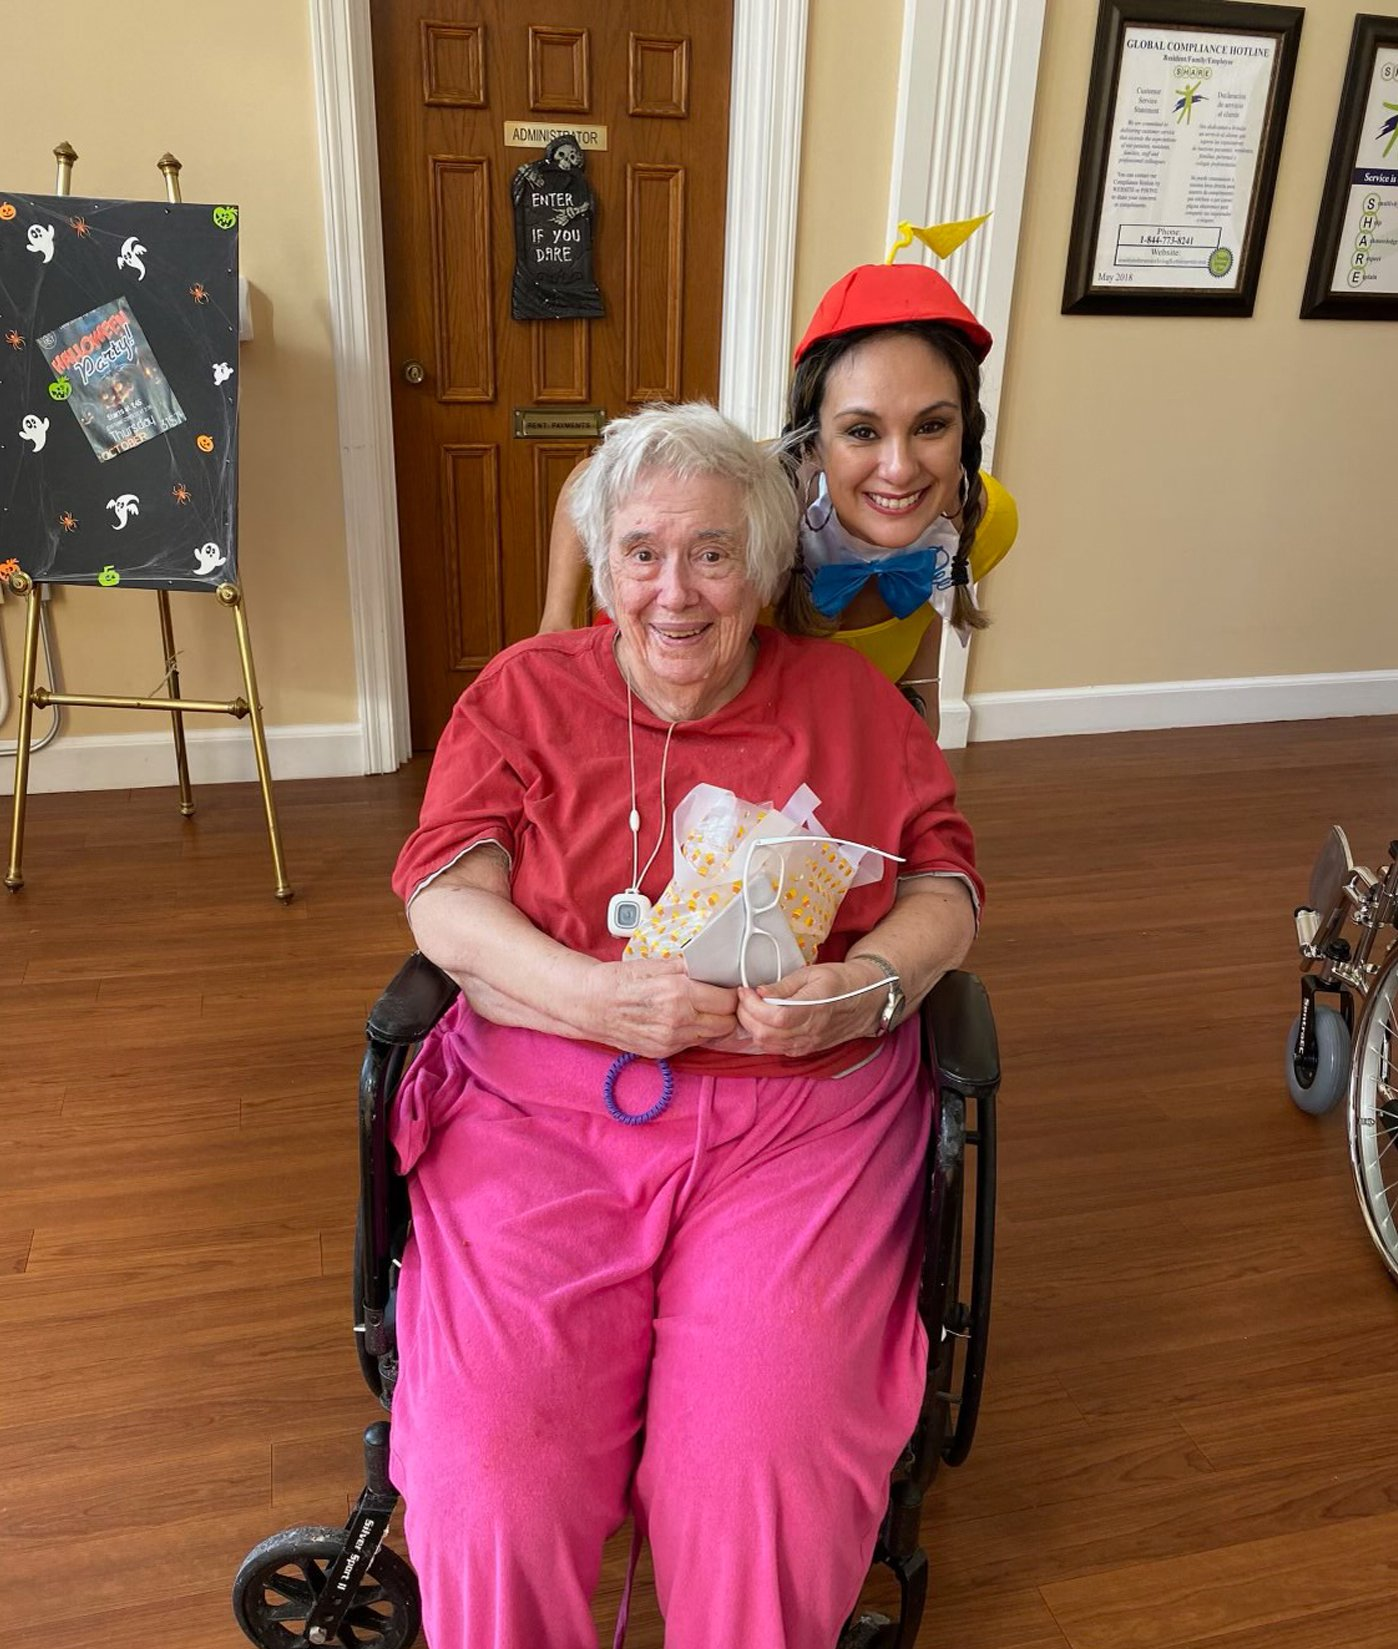 Veronica pushing elderly woman in a wheelchair